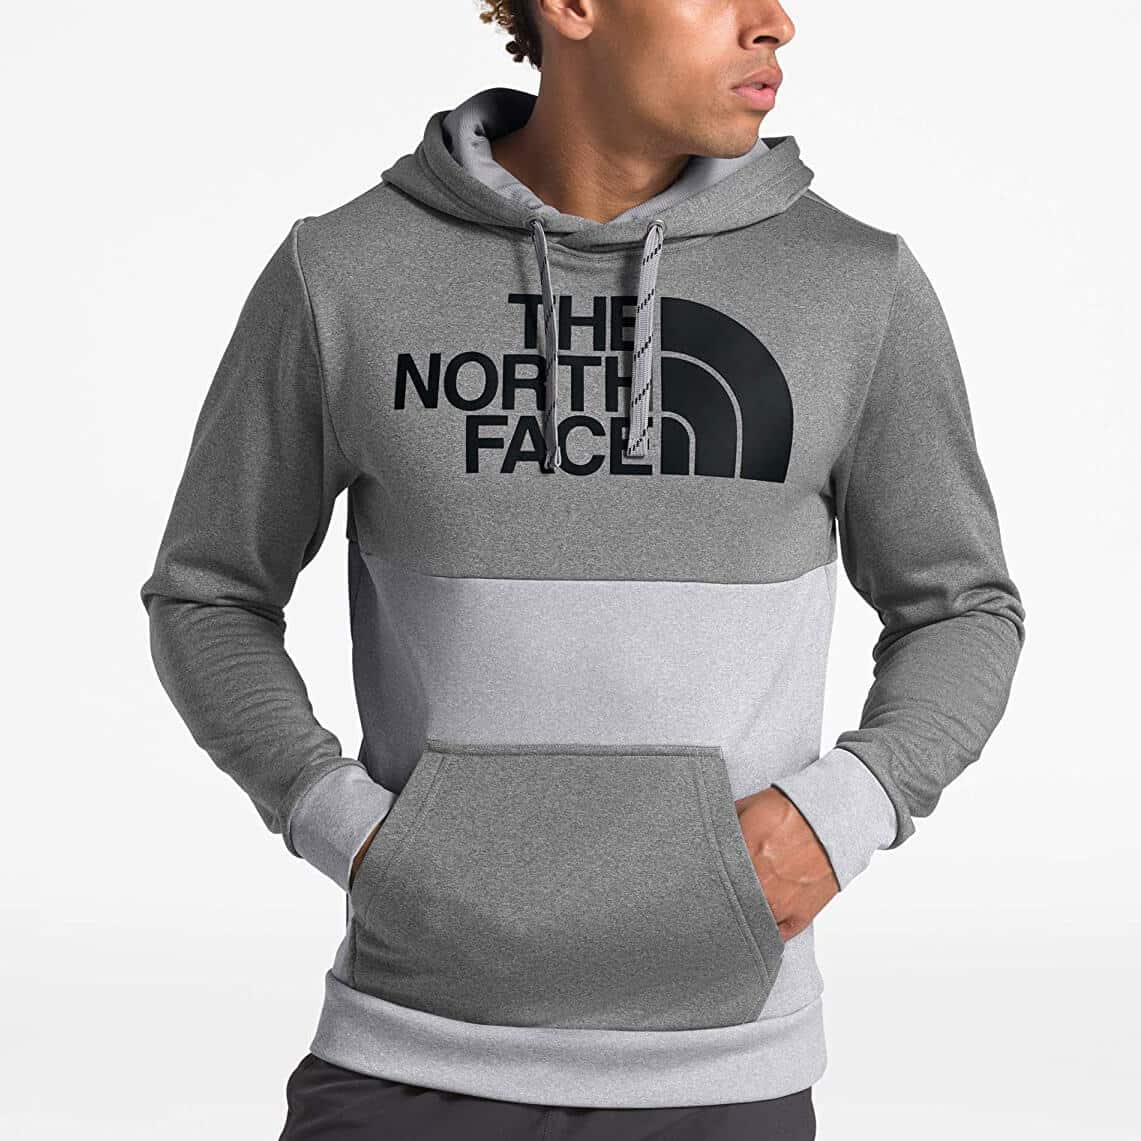 The North Face Men's Surgent Bloc P/O Hoodie